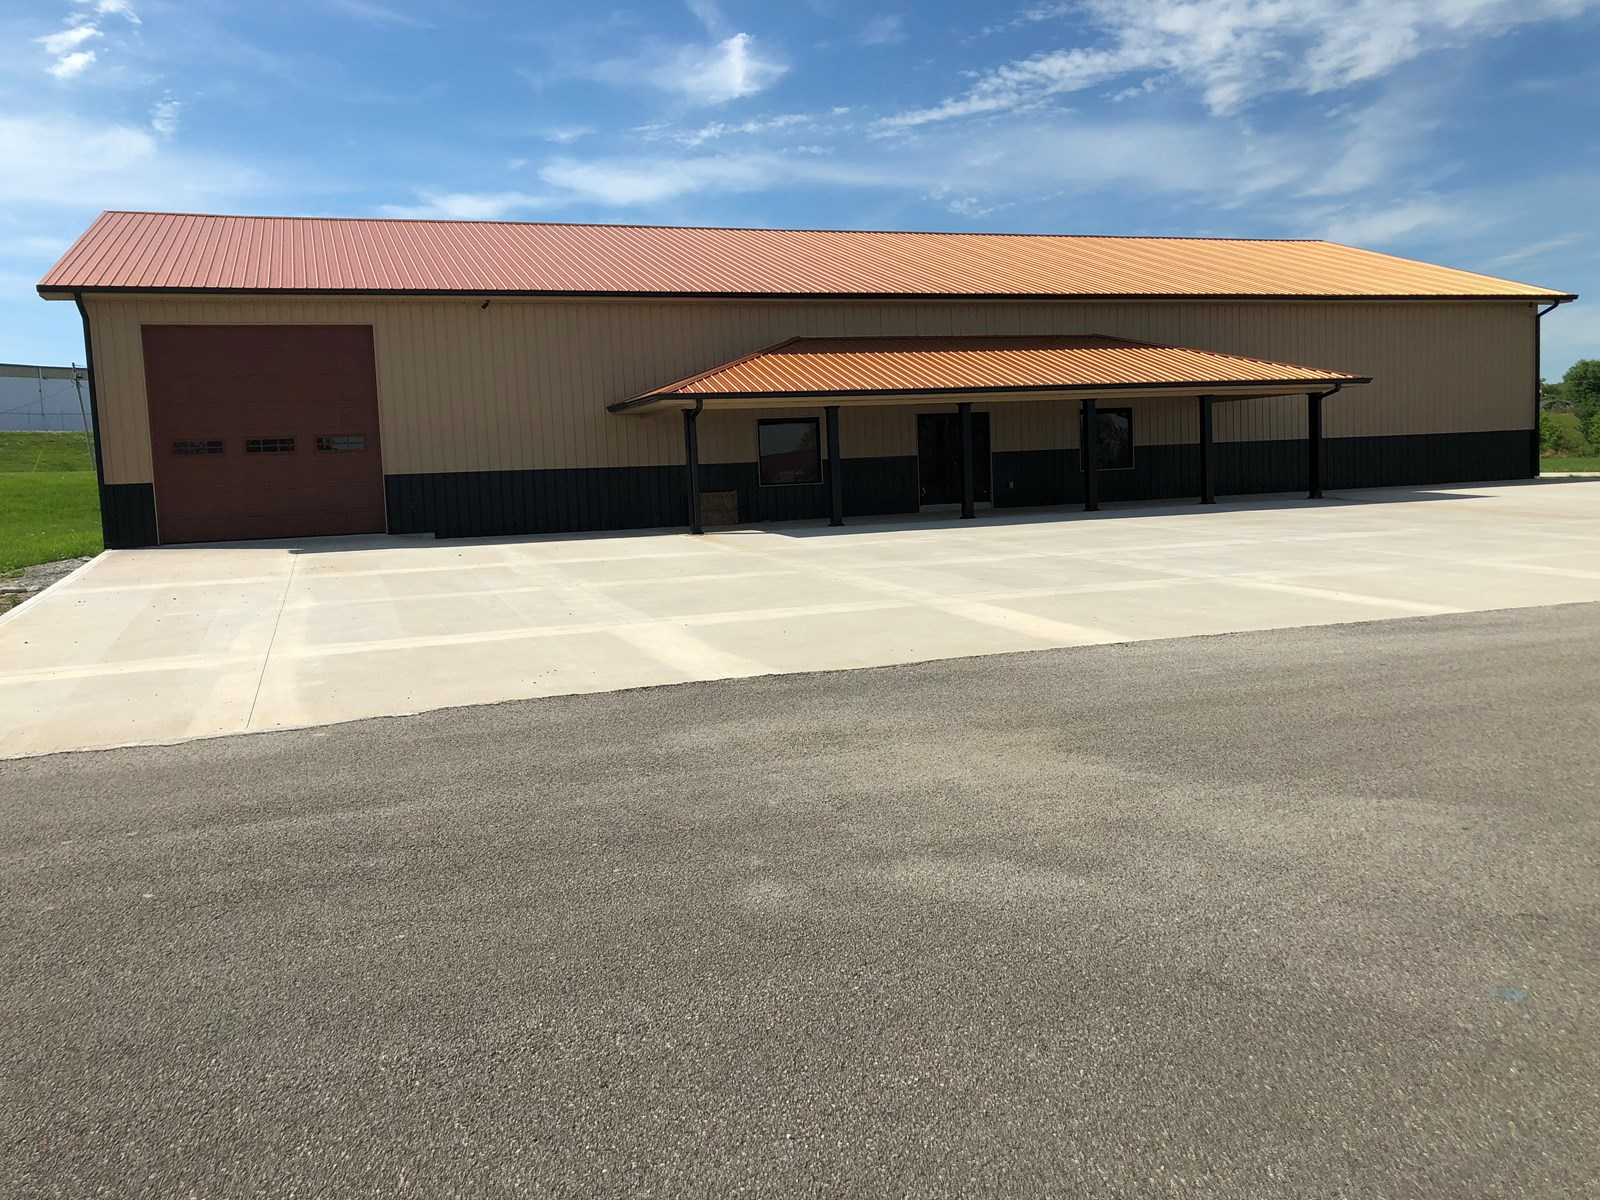 Commercial Building for Sale in Albany, Kentucky